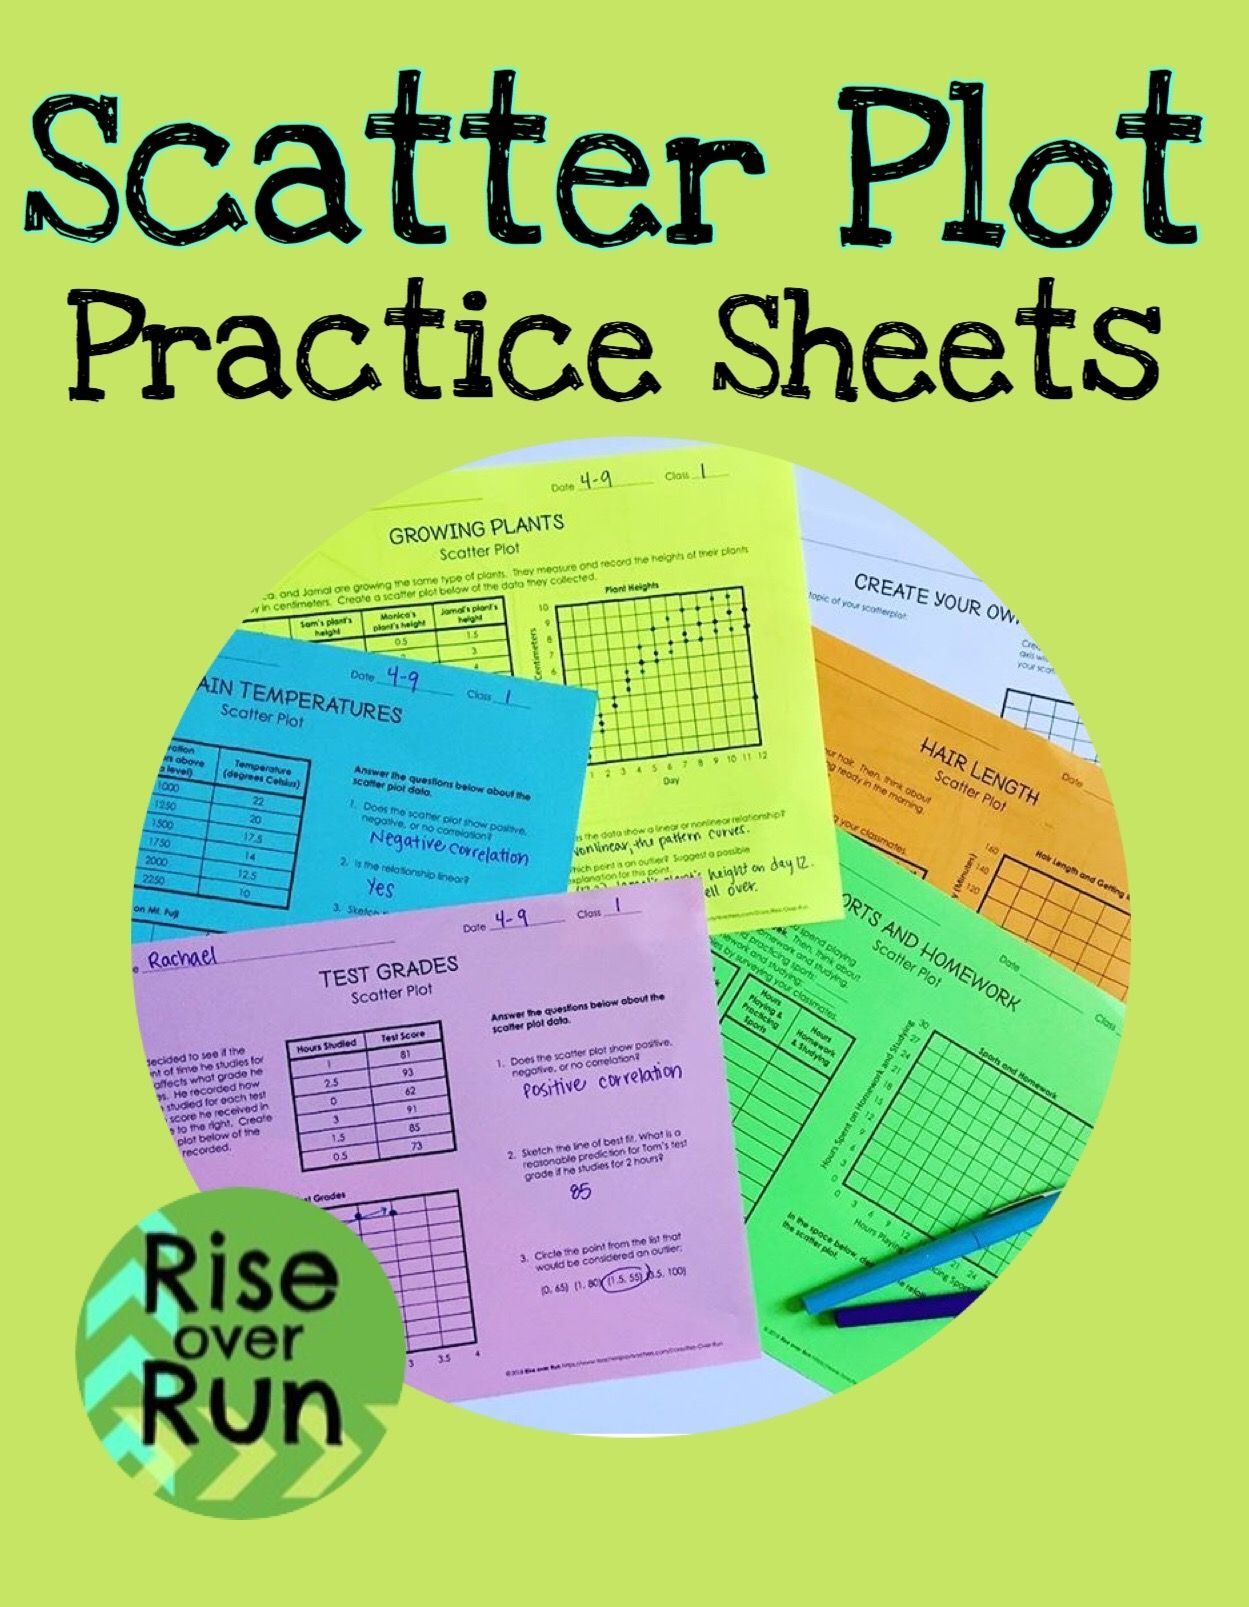 medium resolution of Scatter plot practice worksheets and blank template to create your own.  Line of best fit